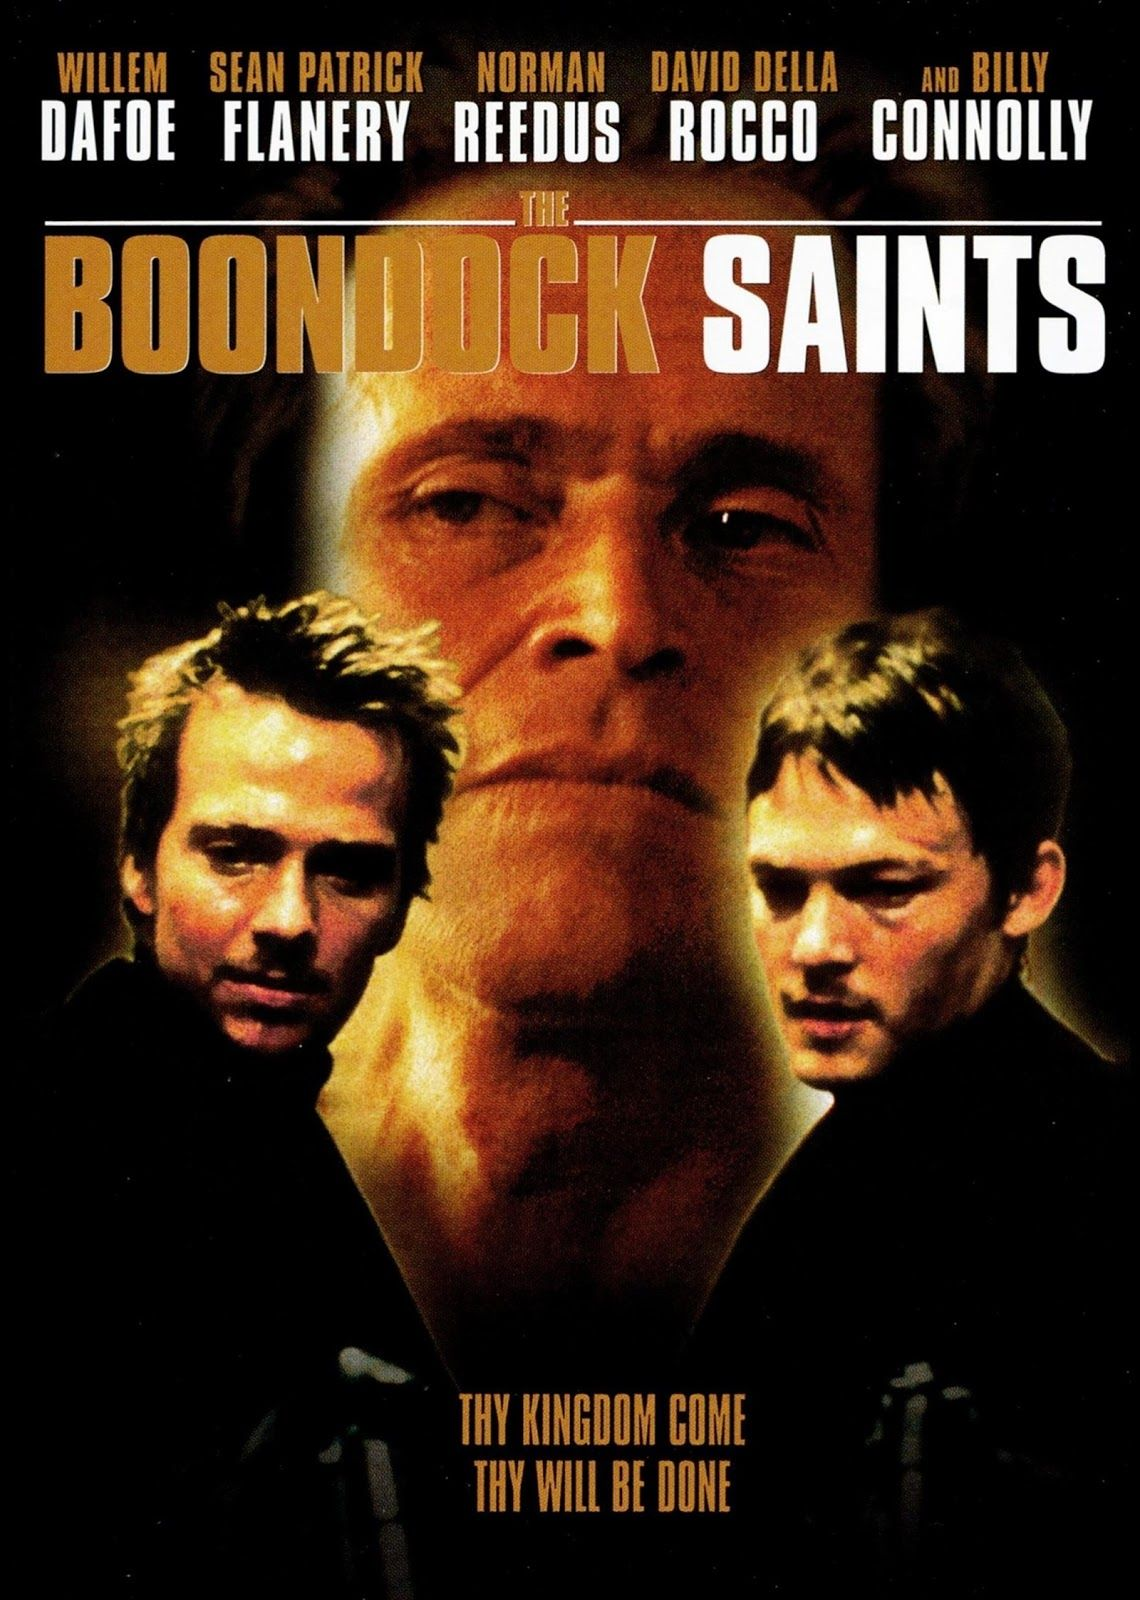 The Boondock Saints (1999) Movie (With images) Boondock